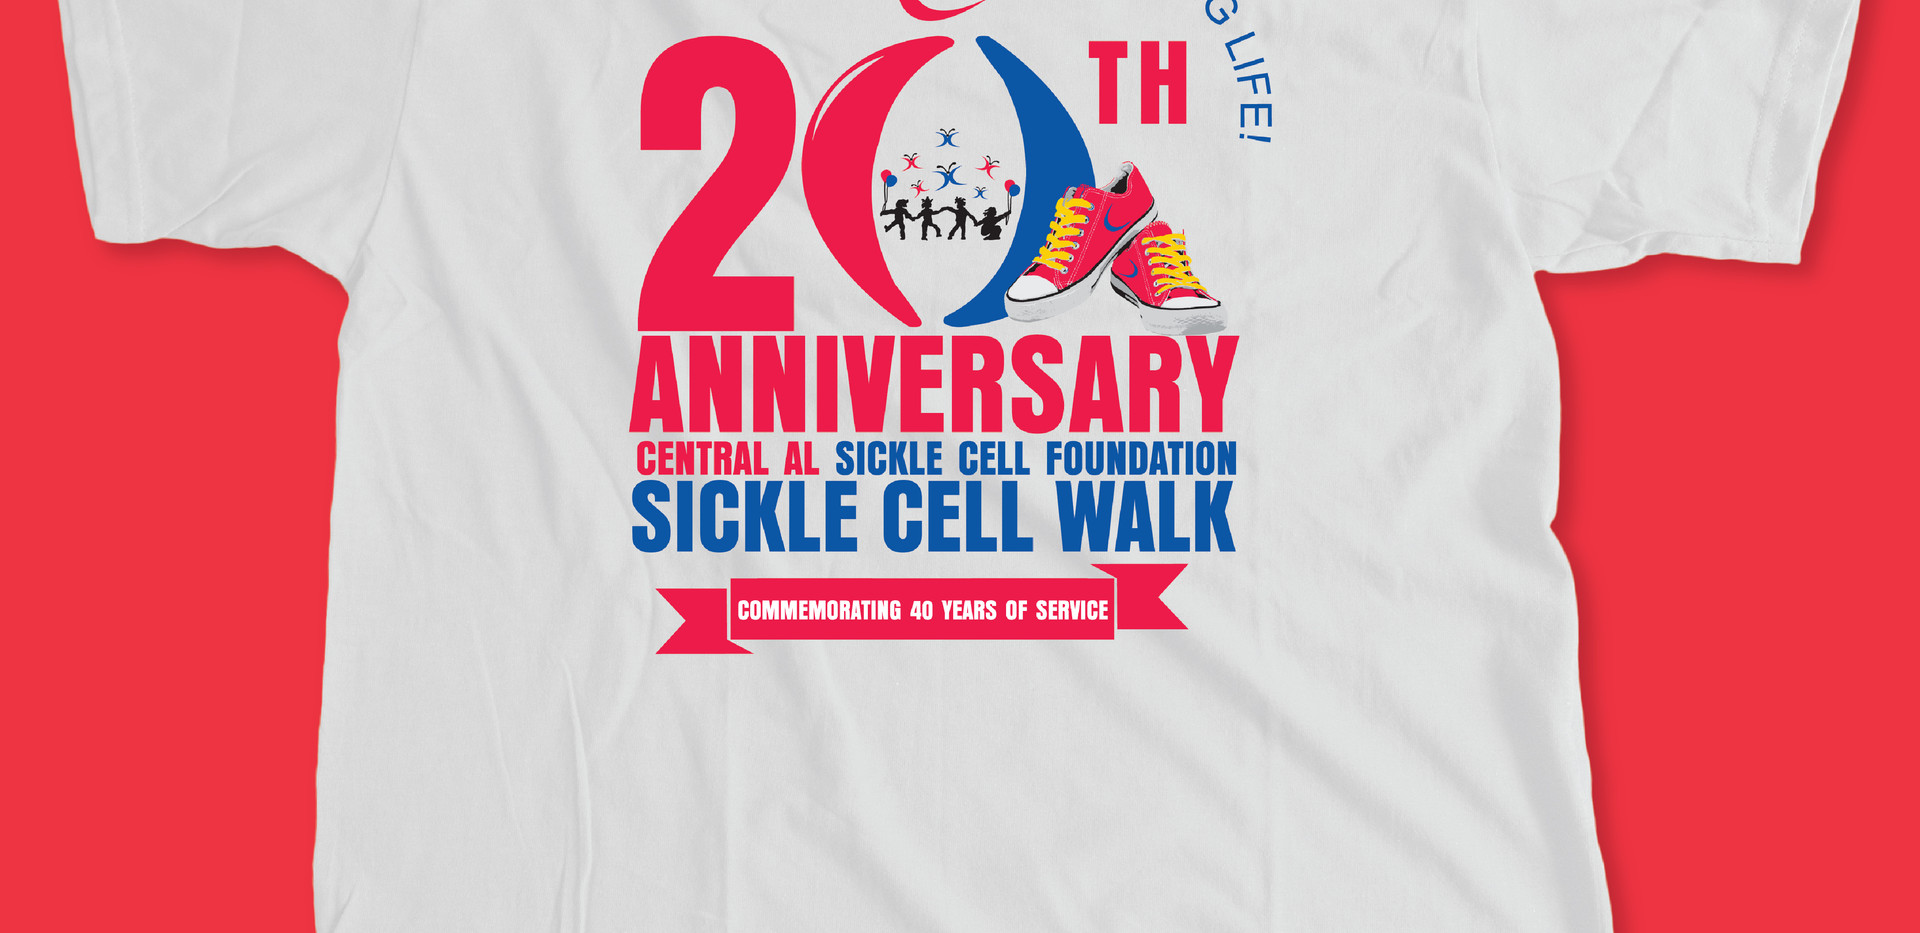 Sickle Cell 20th